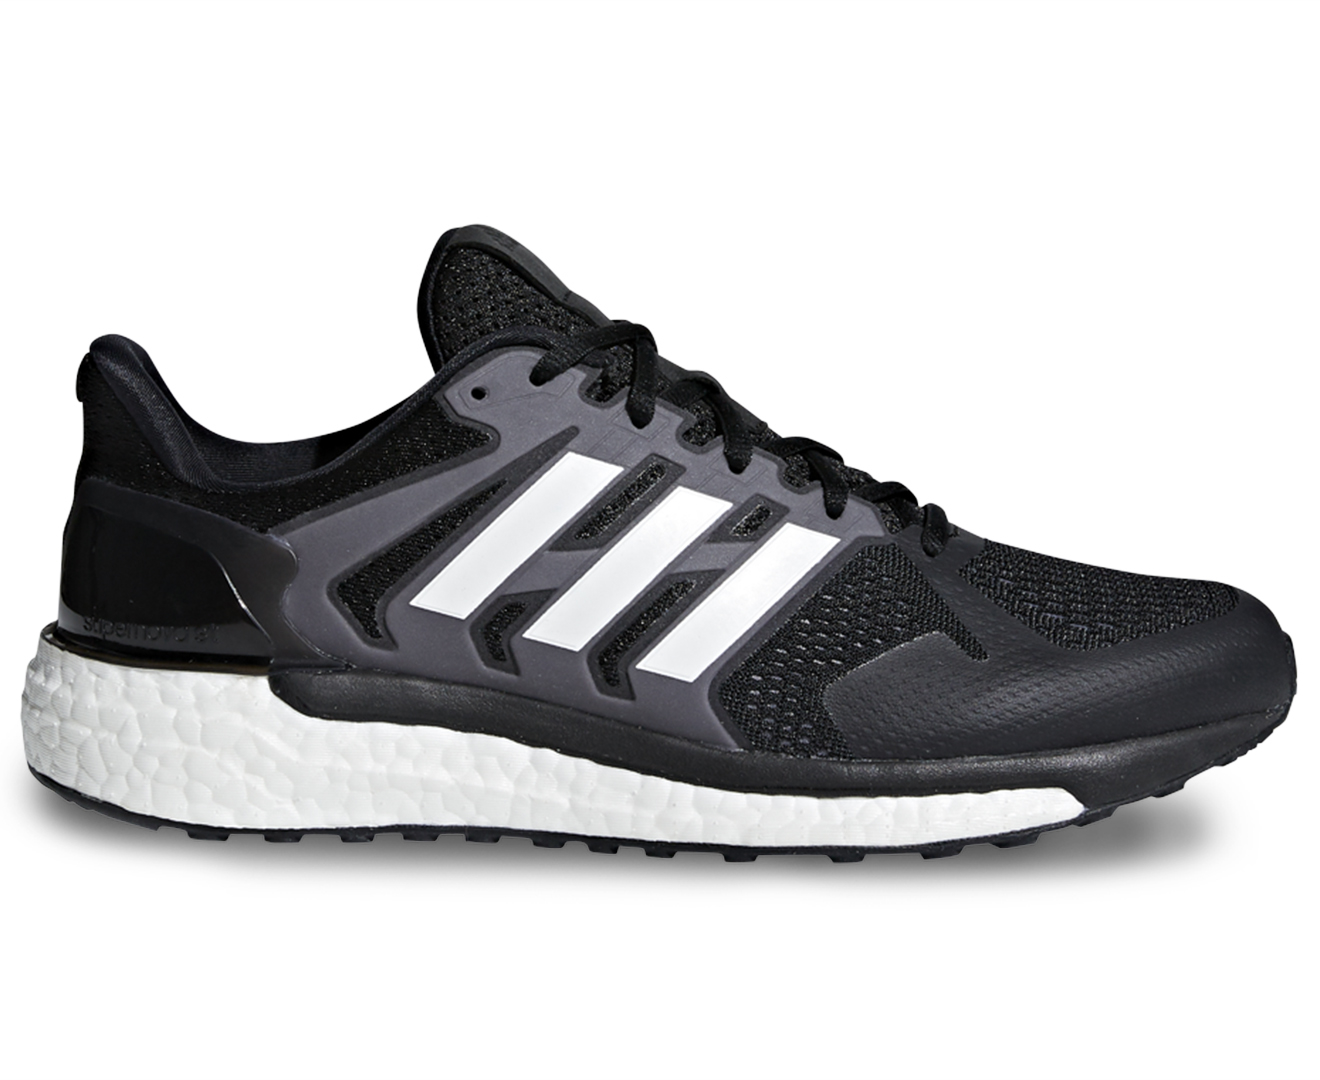 51072b66bc6bb Adidas Men s Supernova ST Shoe - Core Black FTWR White Grey Three